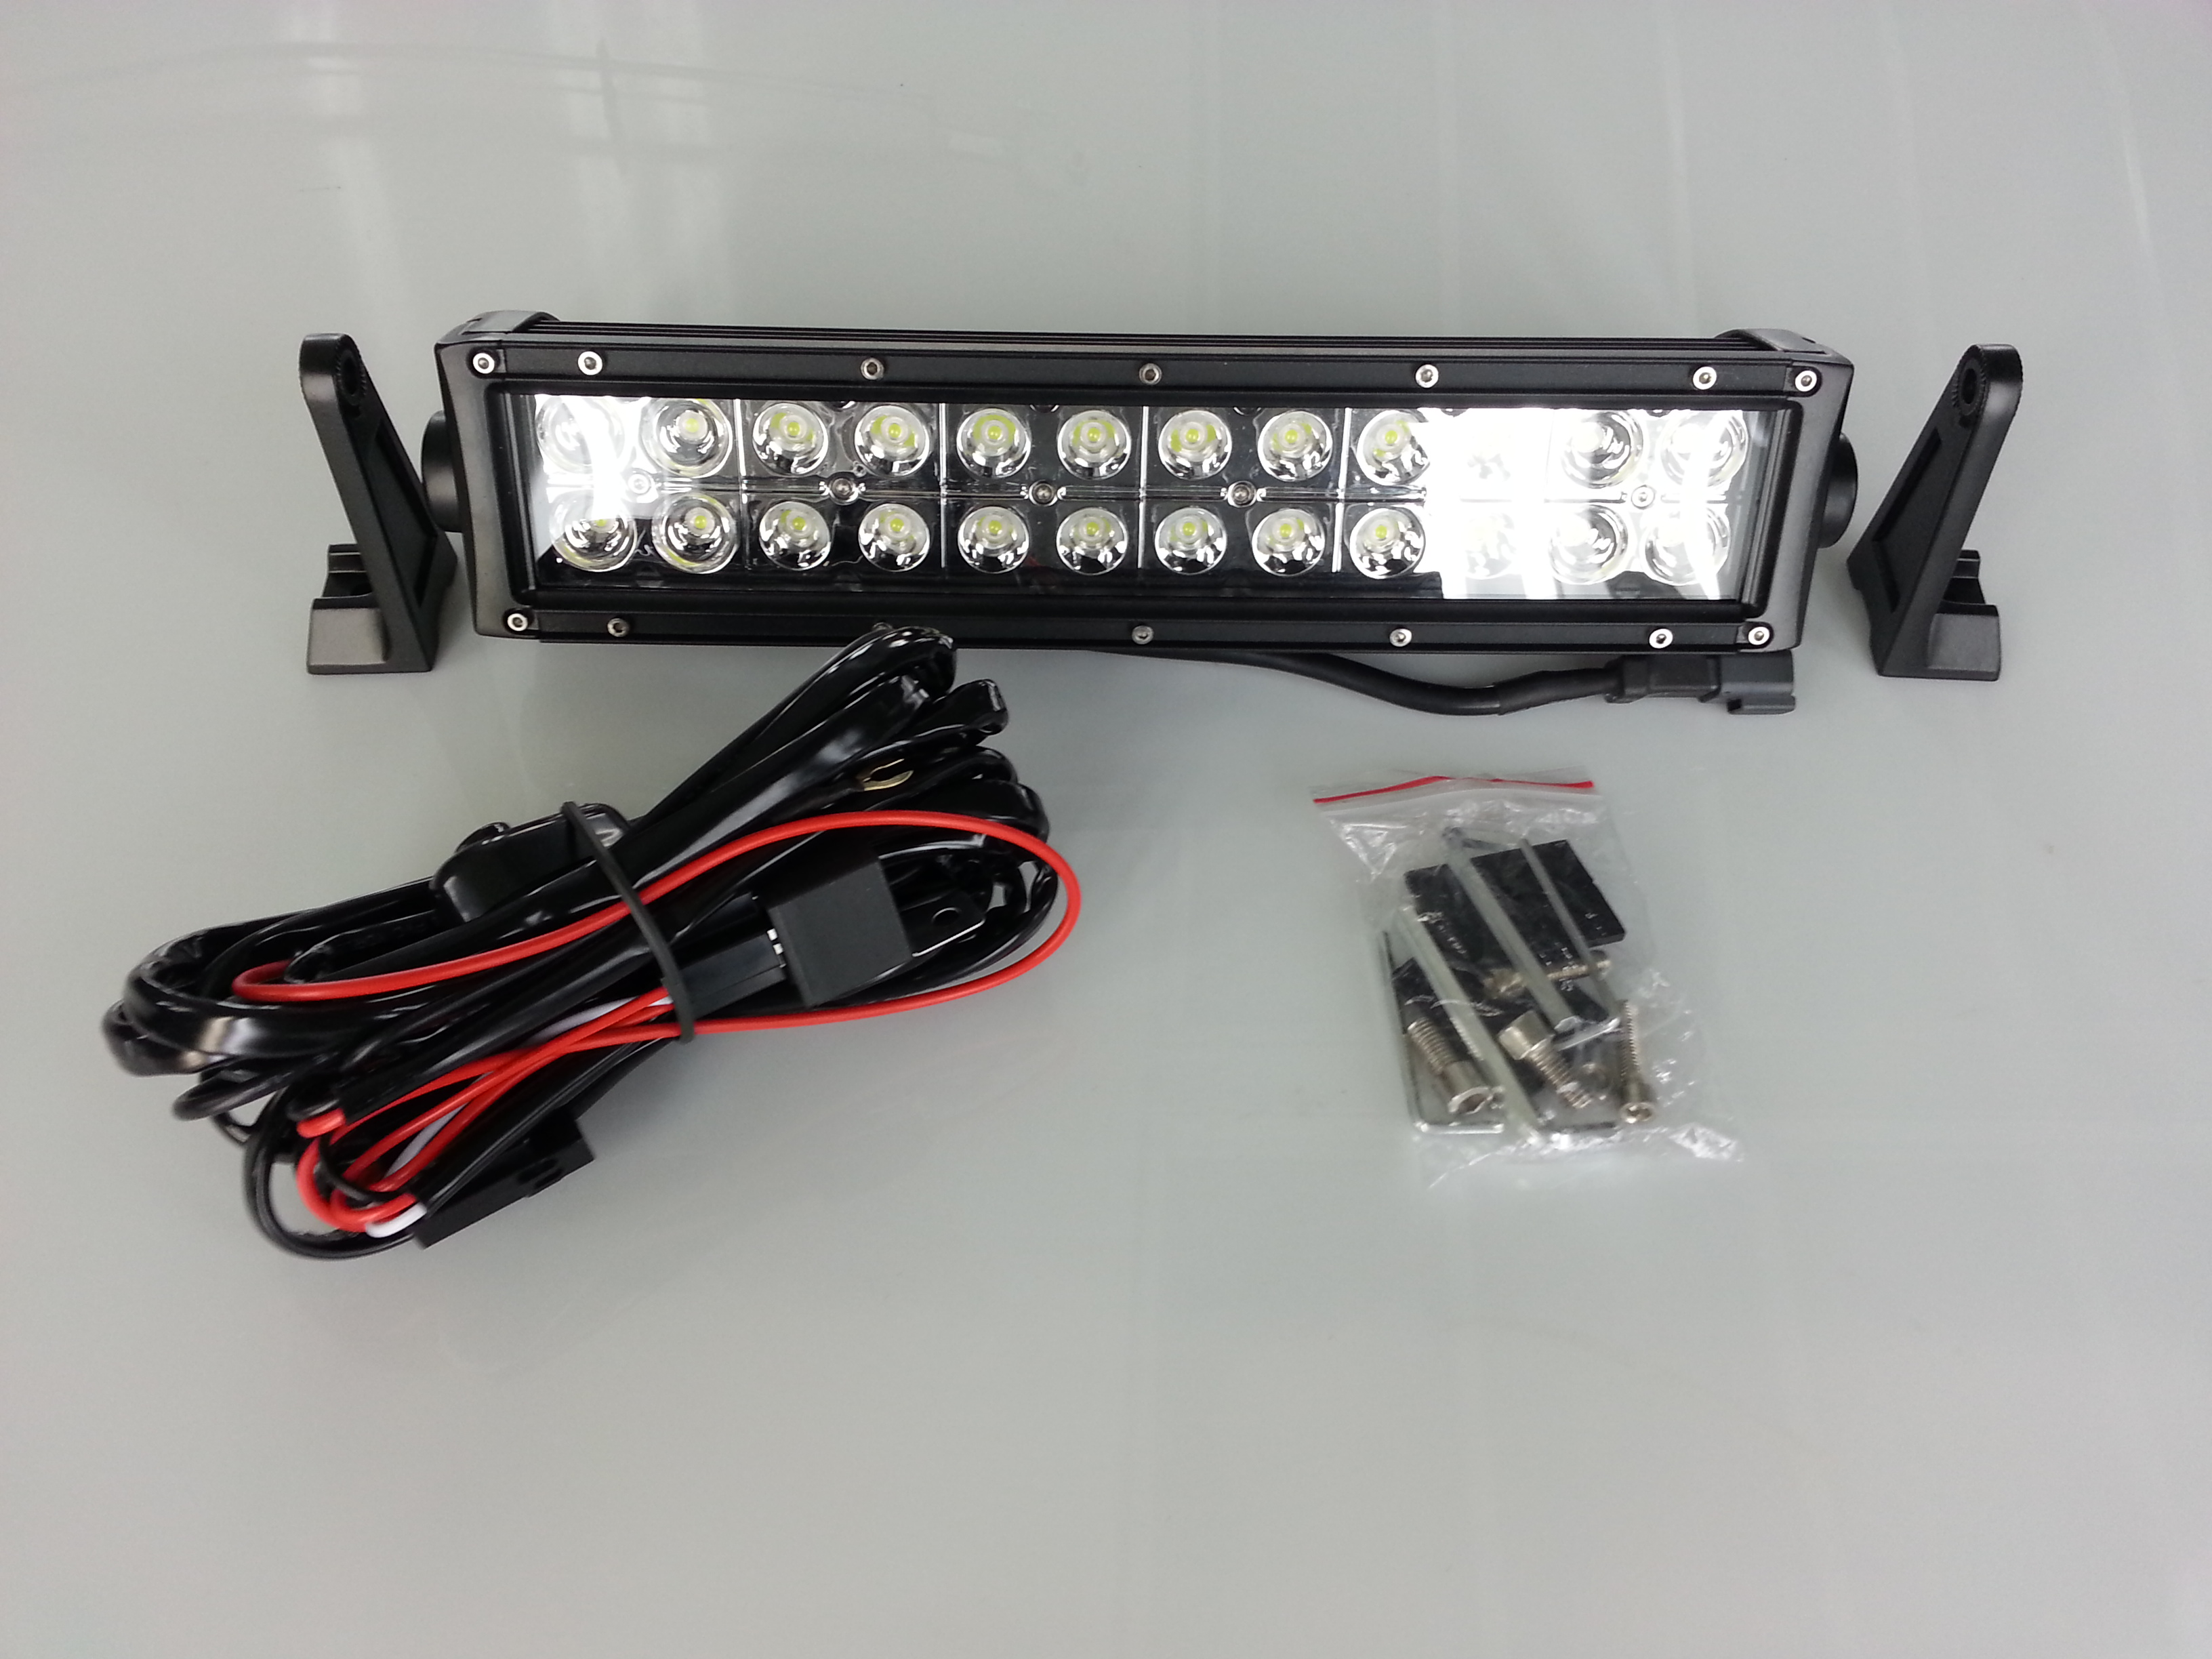 Promaxx 12in led light bar aloadofball Image collections